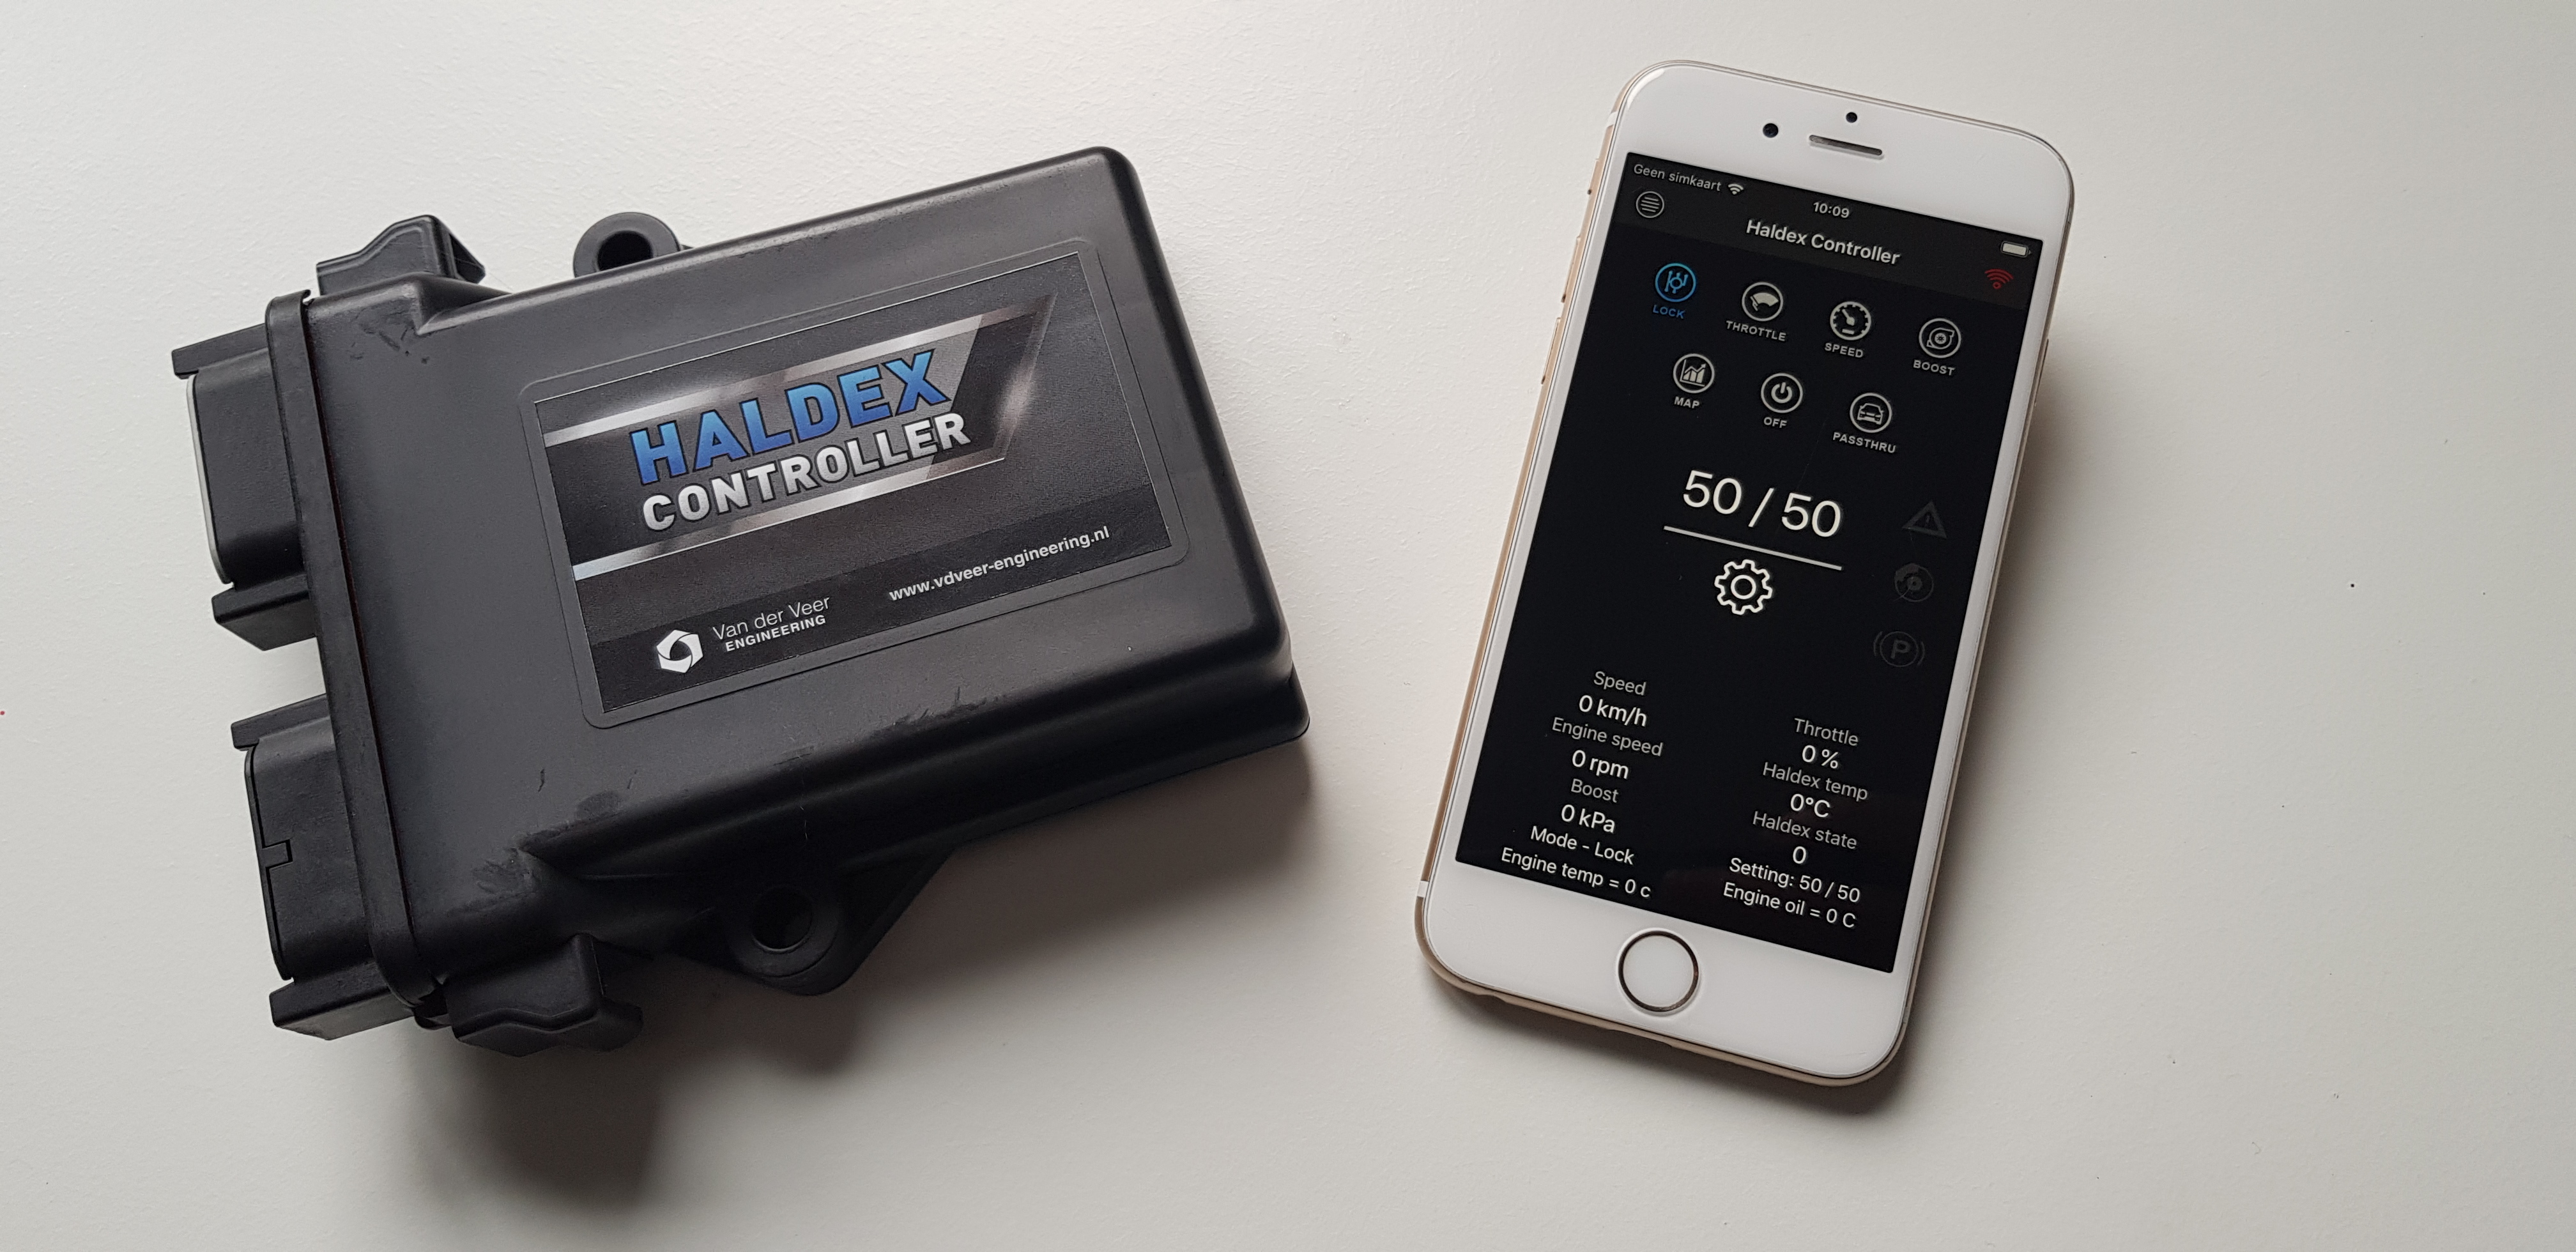 Haldex Controller iOS Iphone Apple